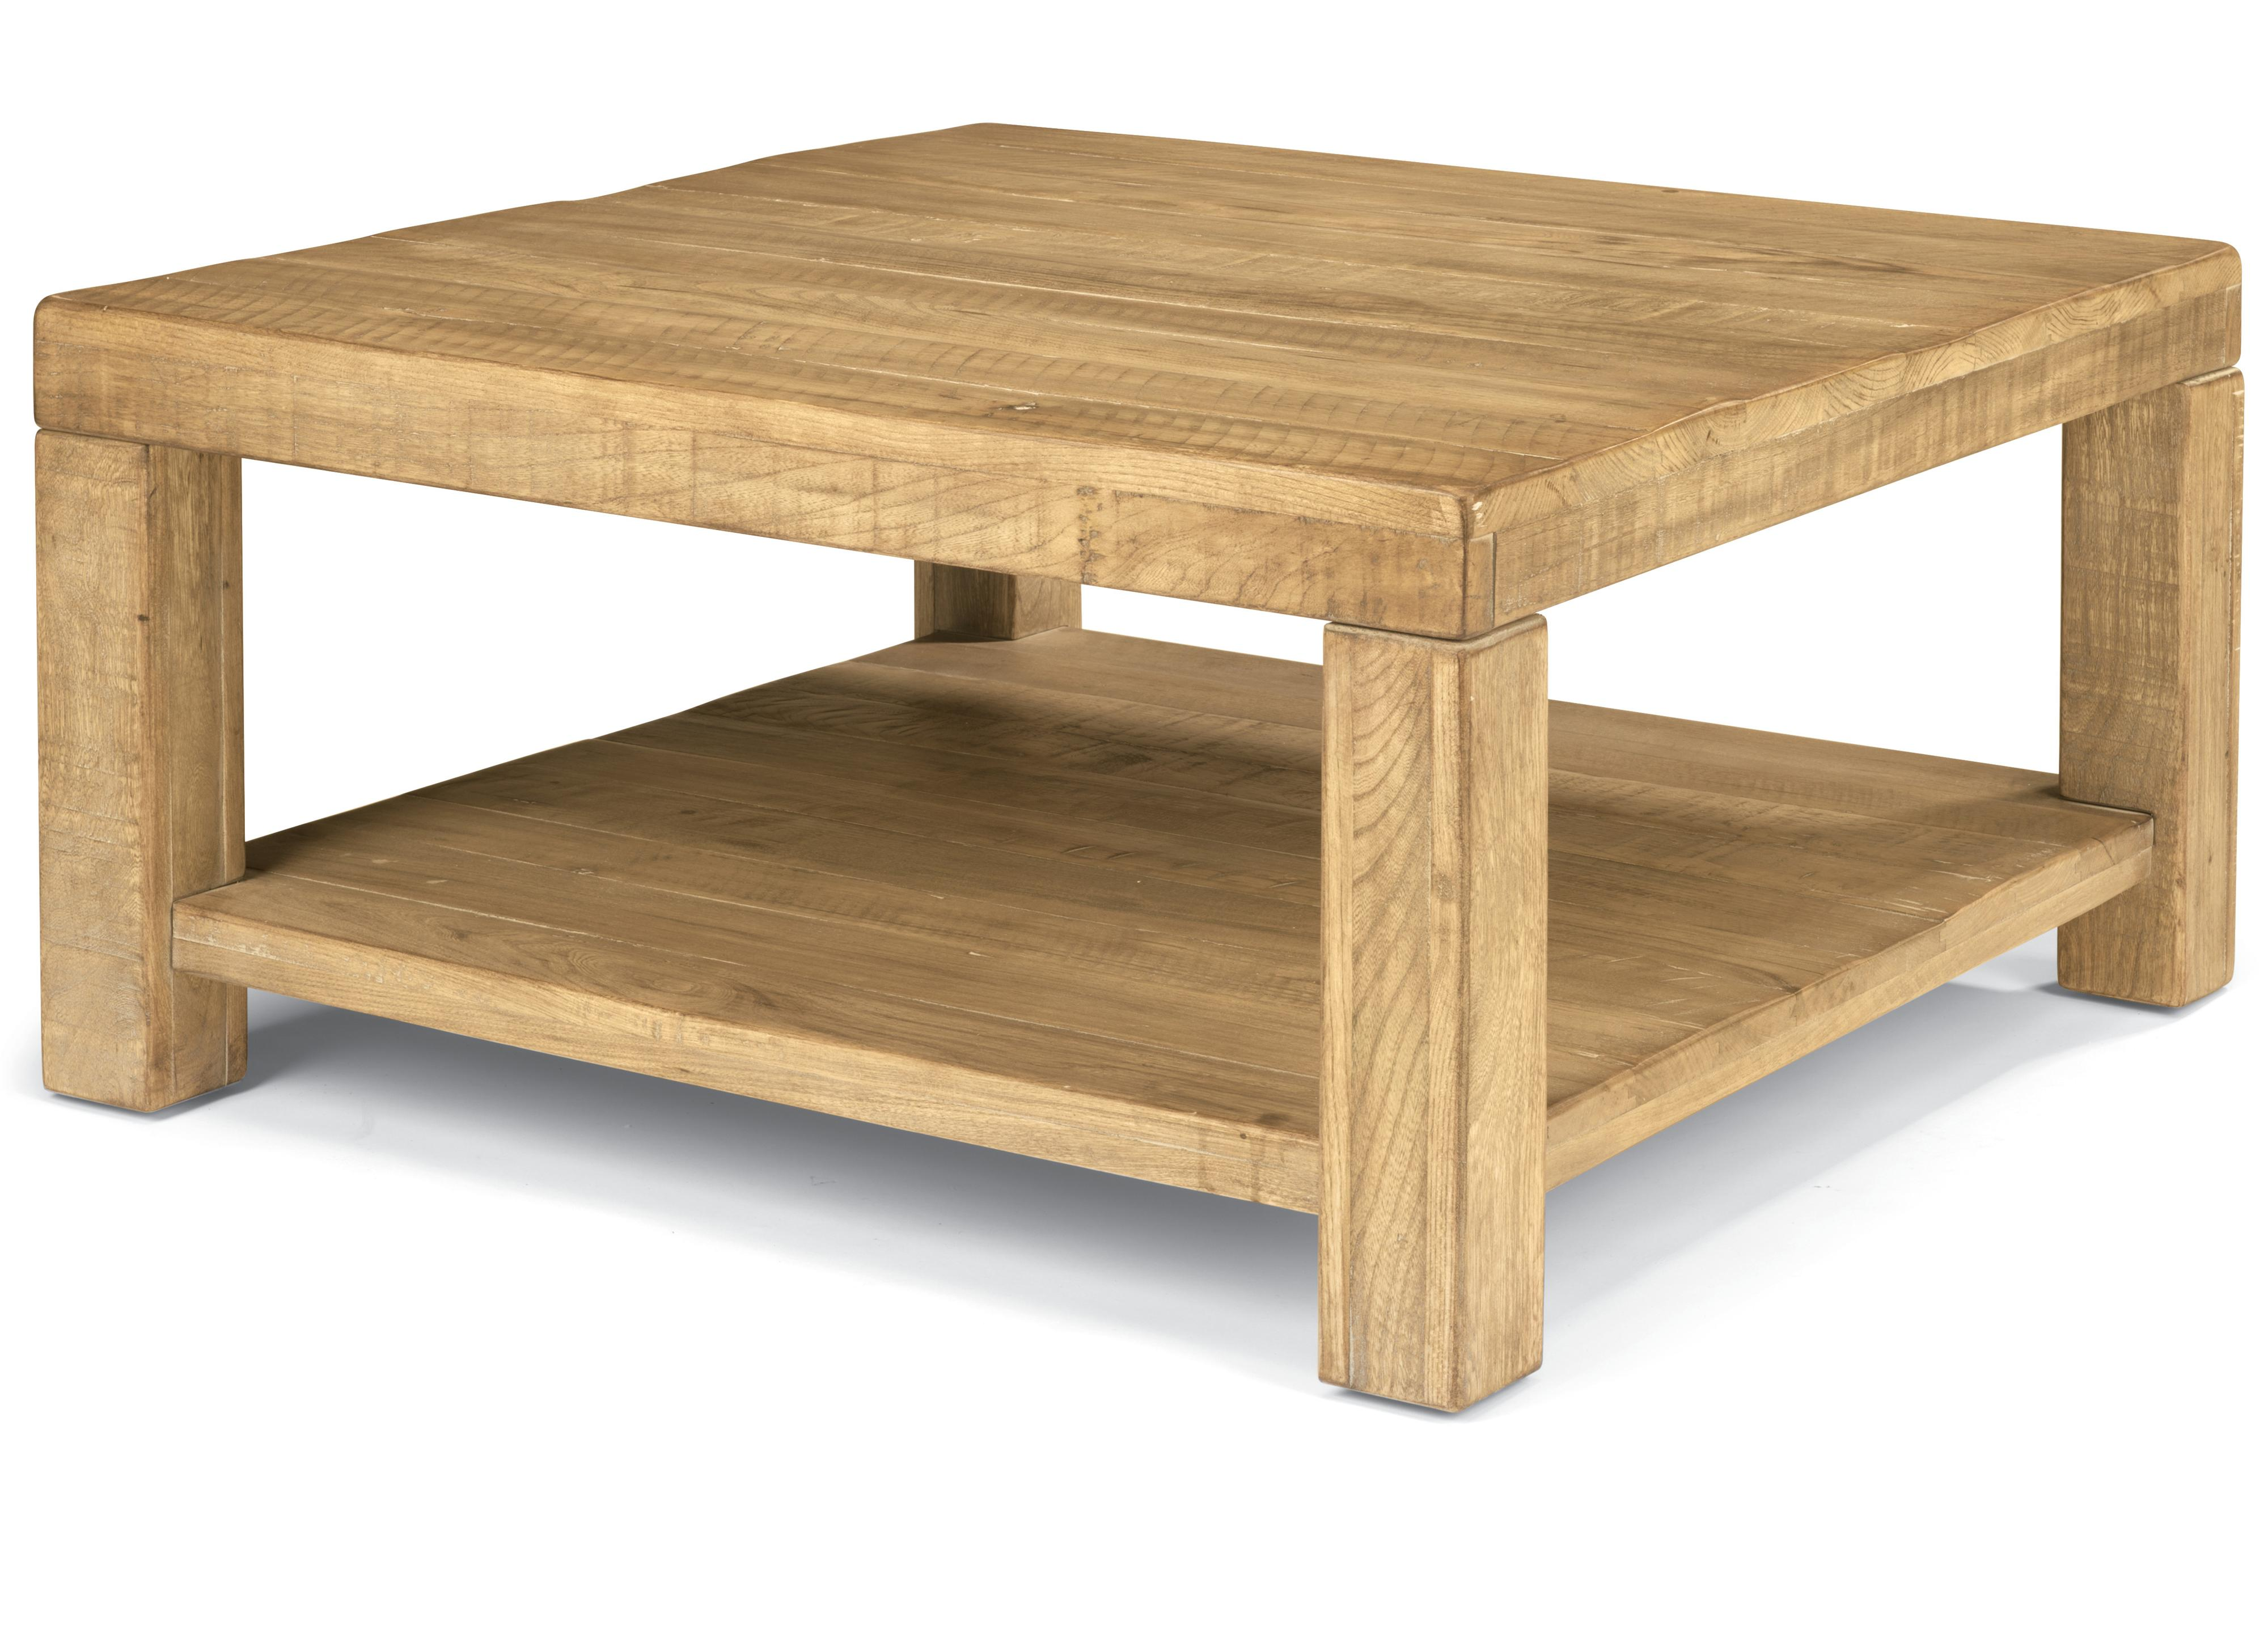 Flexsteel Sawyer Square Cocktail Table With Block Legs Wayside Furniture Cocktail Or Coffee